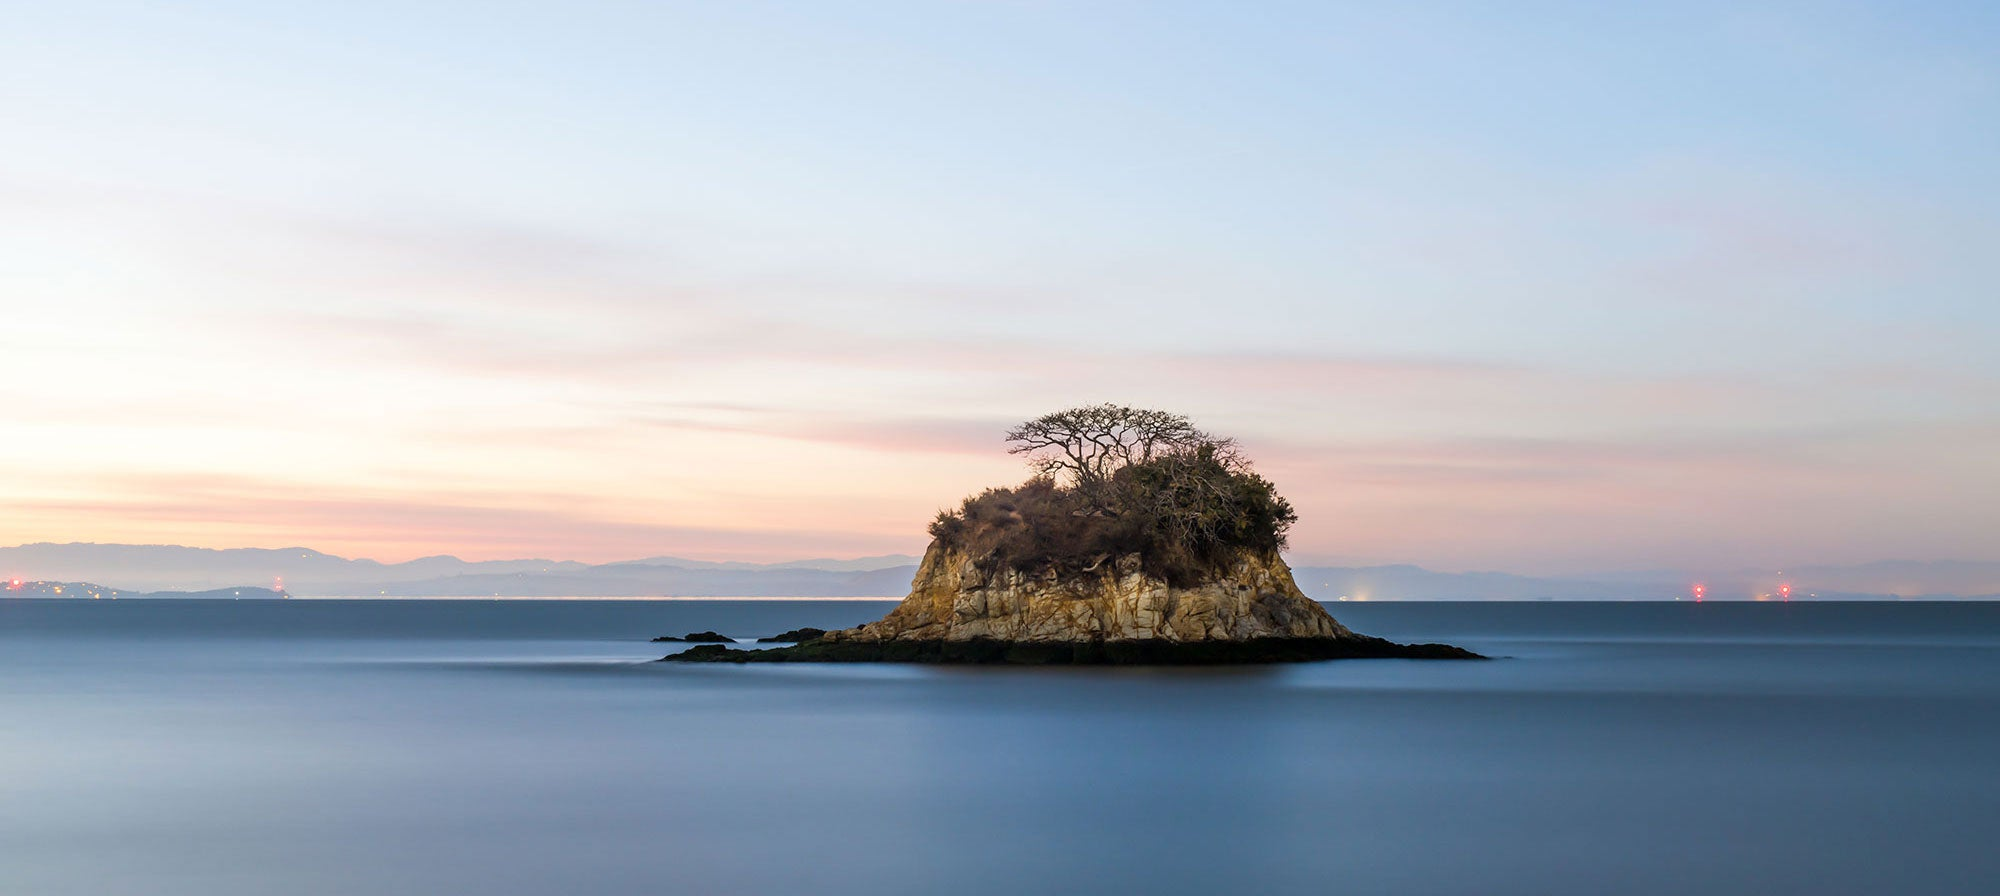 The show features mega-sized prints, including this one of Rat Rock Island.